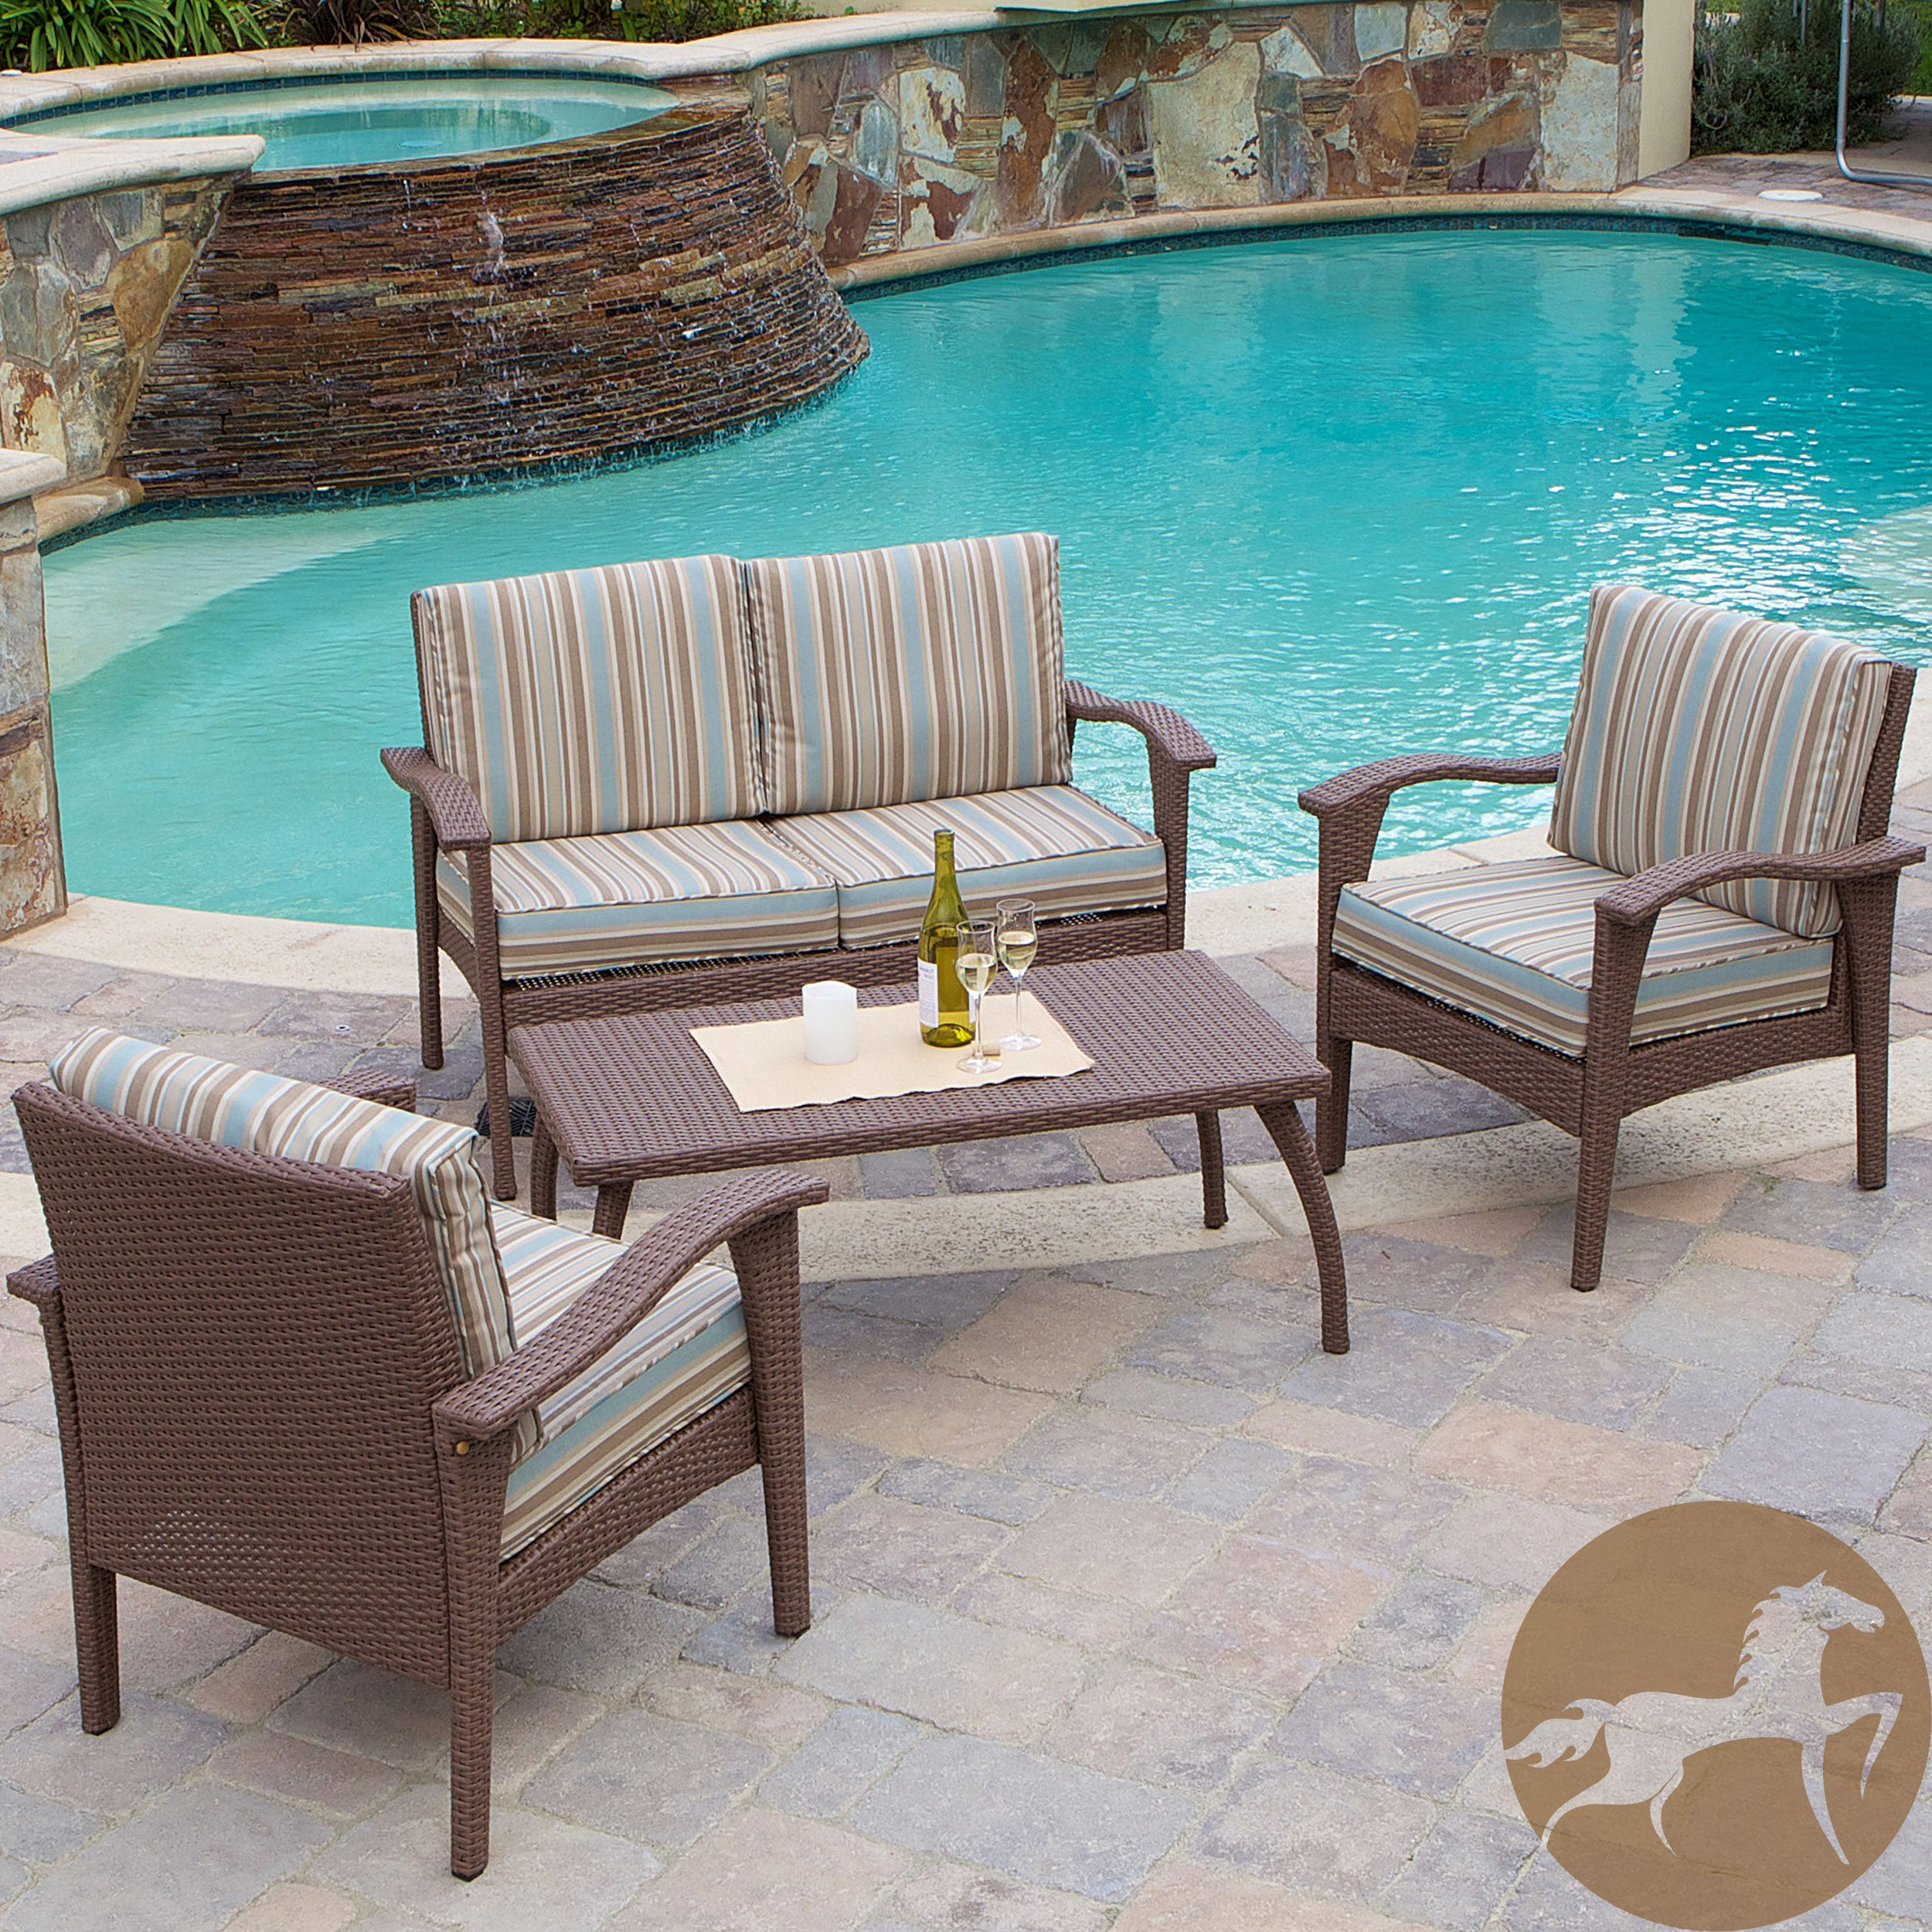 Sectionals Honolulu Homes Decoration Tips : Christopher Knight Home Honolulu Outdoor Brown Wicker Sofa Set bd4c7c67 f5c5 49f4 843e 57cf70b2dbfc from homesdecorationtips.blogspot.com size 2500 x 2500 jpeg 993kB